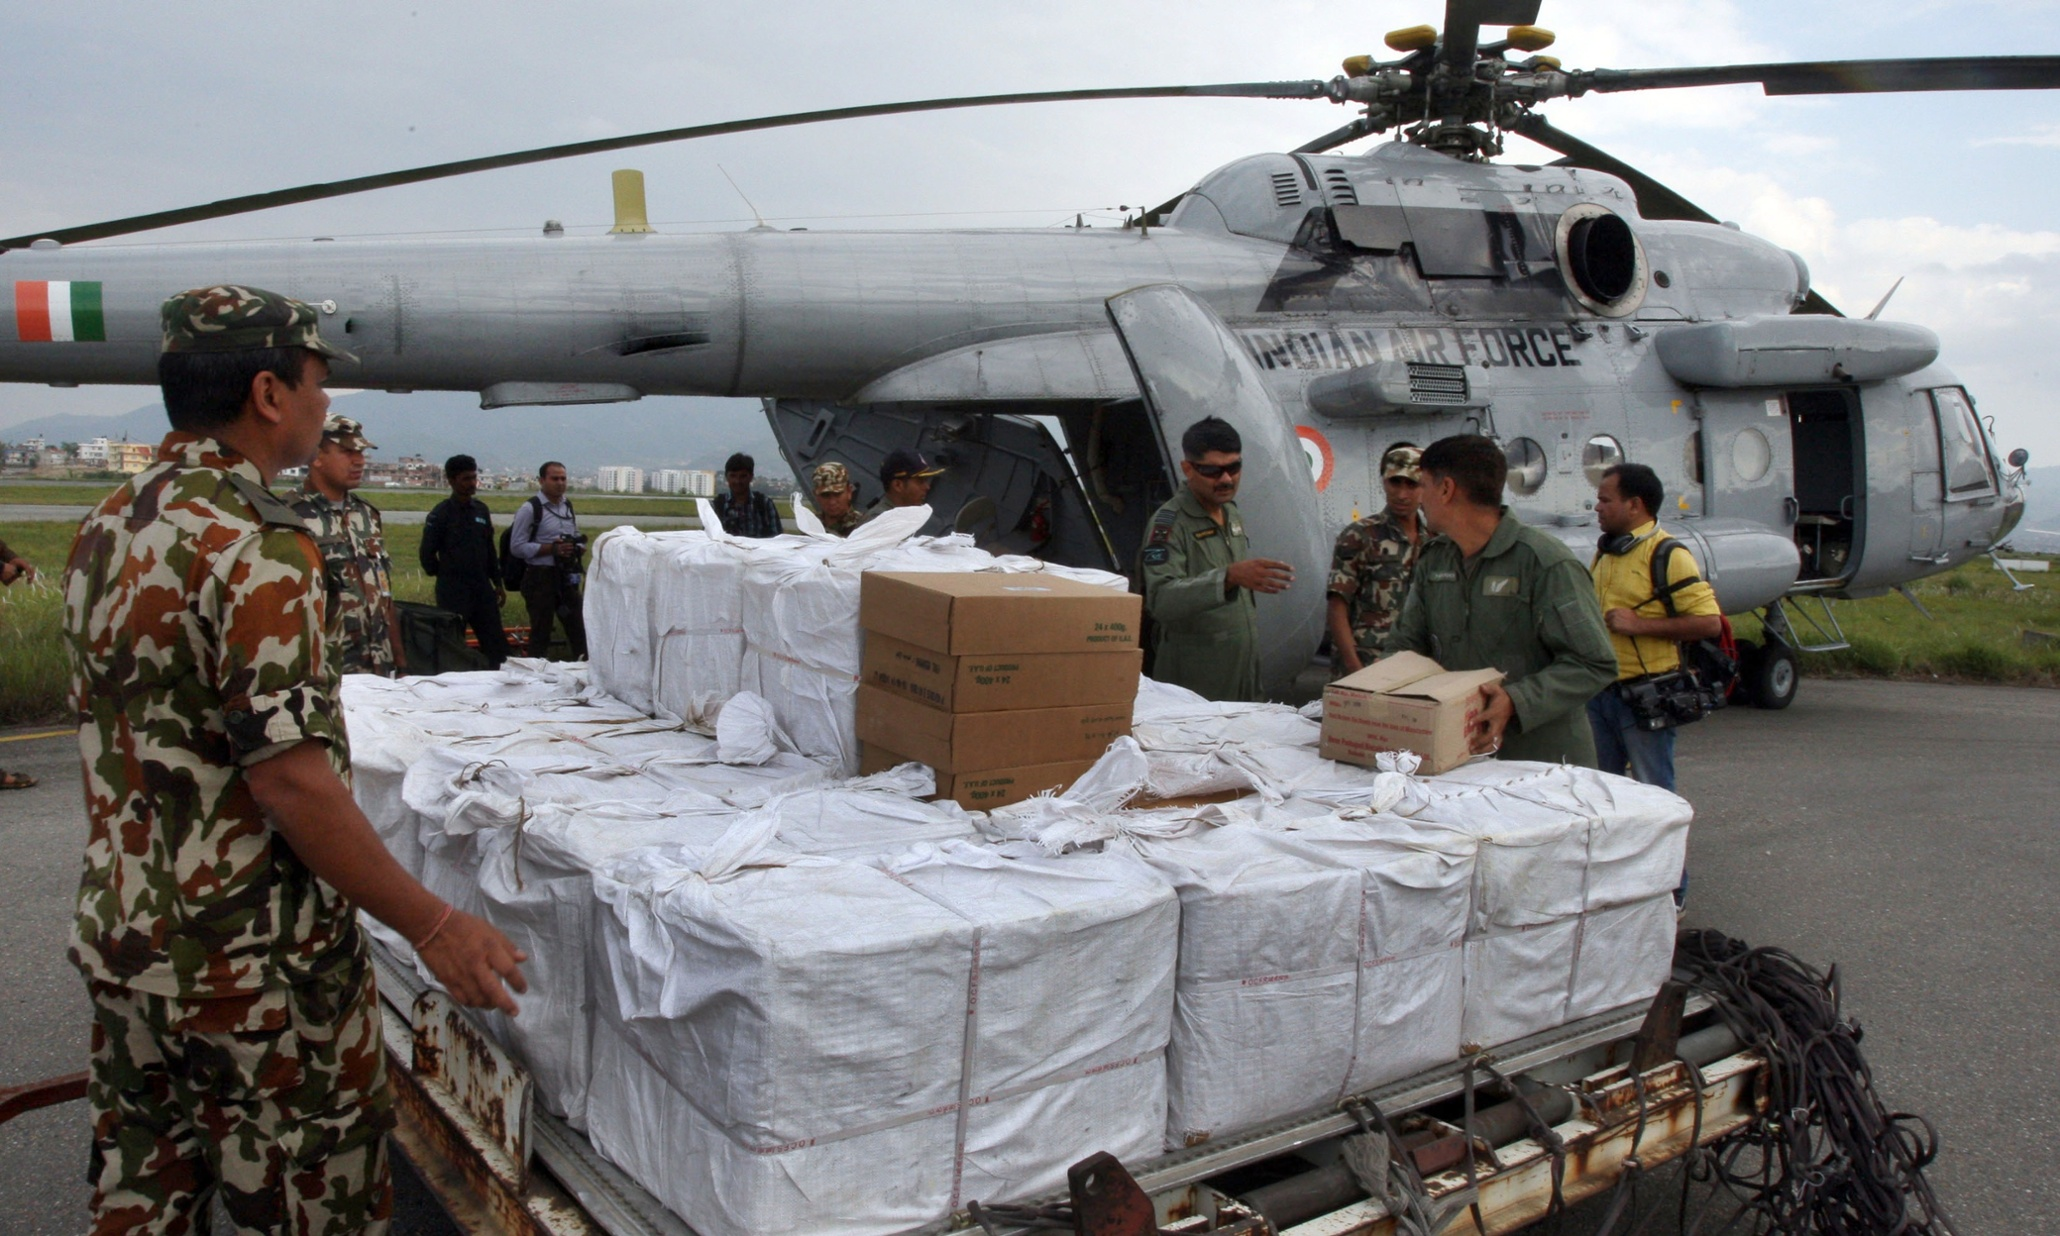 TO GO WITH Nepal-quake-India-China-diplomacy,FOCUS by Annie BANERJI and Abhaya SRIVASTAVA In this handout photo received from the Indian Air Force (IAF) on April 29, 2015 and taken on April 28, 2015, Nepalese Army personnel load relief material into an Indian Air Force MI-17 helicopter at Kathmandu airport. Nepal's overwhelmed government has been criticised by frustrated residents, hundreds of thousands of whom are desperate for assistance after the April 25 monster quake. But foreign countries, with their medics, specialist rescuers and helicopter sorties, have won applause, with giant neighbour India sometimes singled out for praise as the biggest provider. AFP PHOTO / IAF -EDITORS NOTE- RESTRICTED TO EDITORIAL USE - MANDATORY CREDIT -